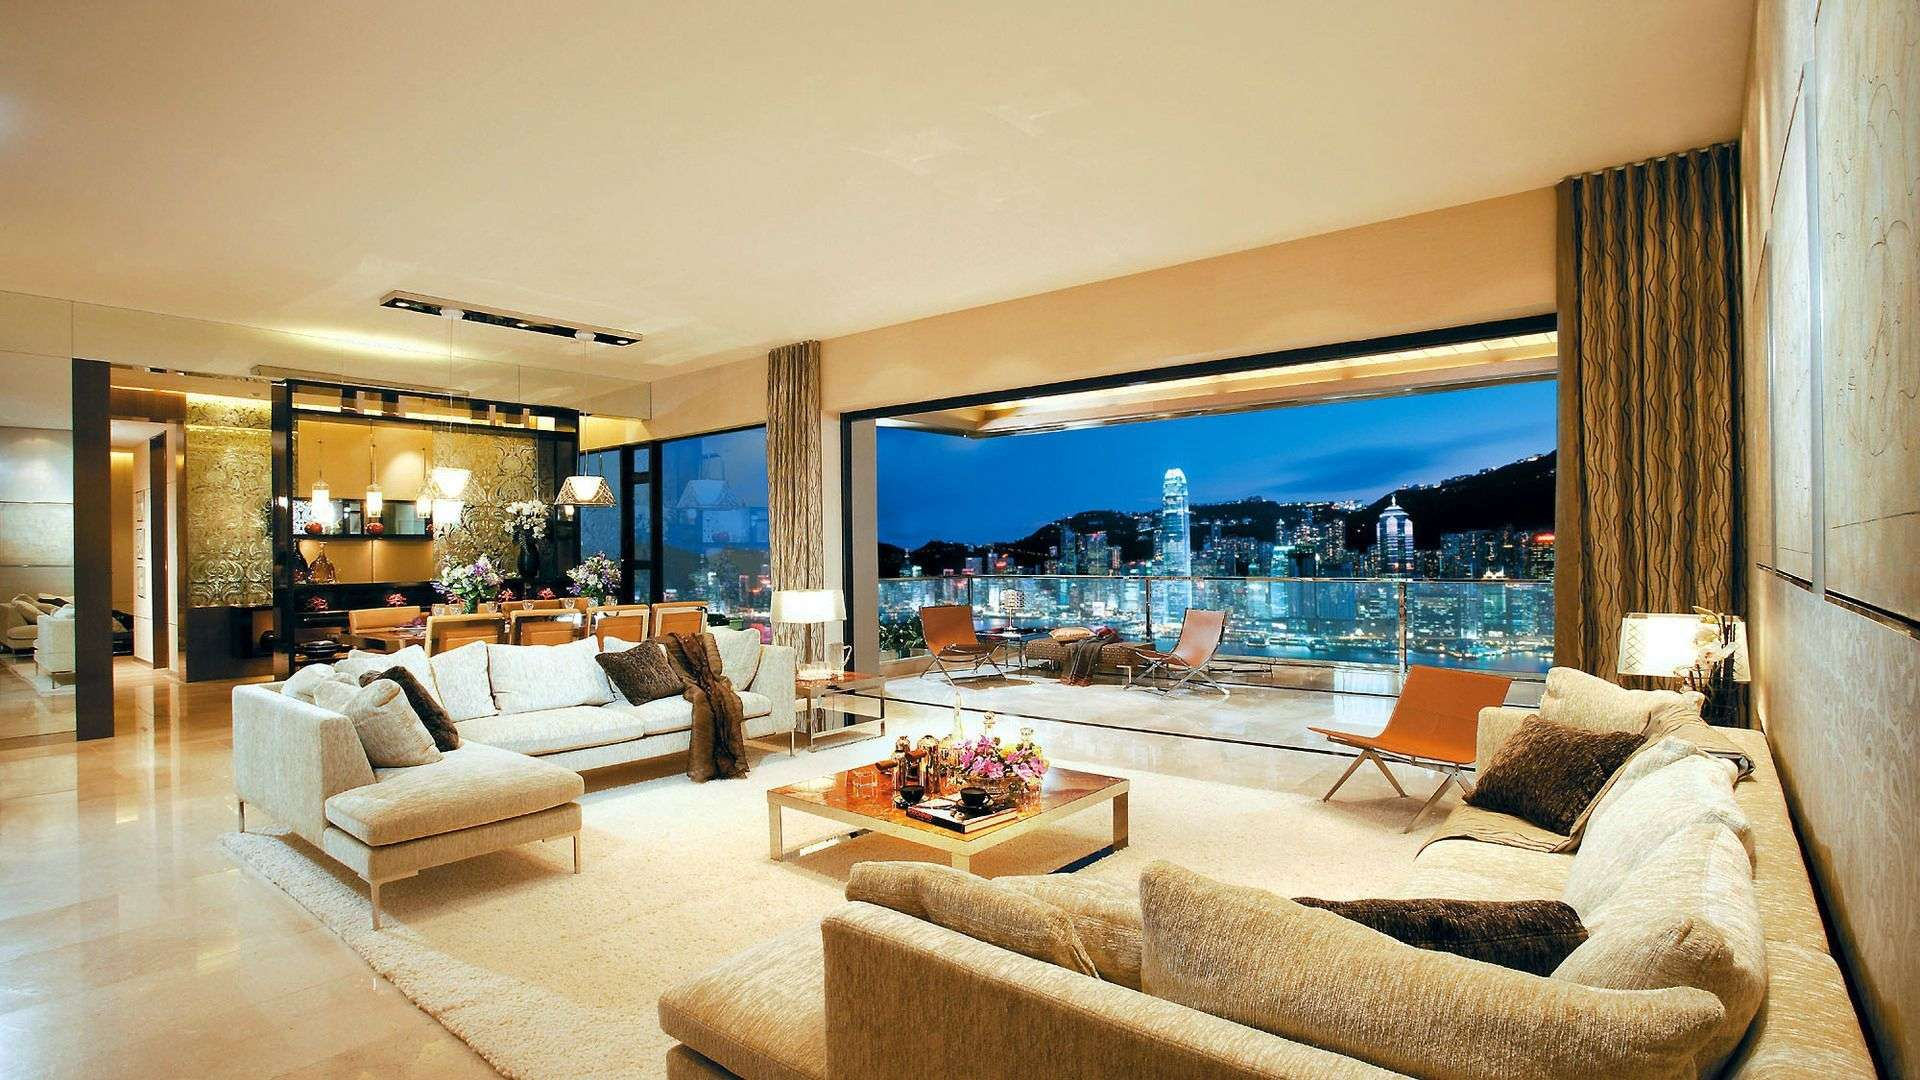 Luxurious Living Room With Quite The View